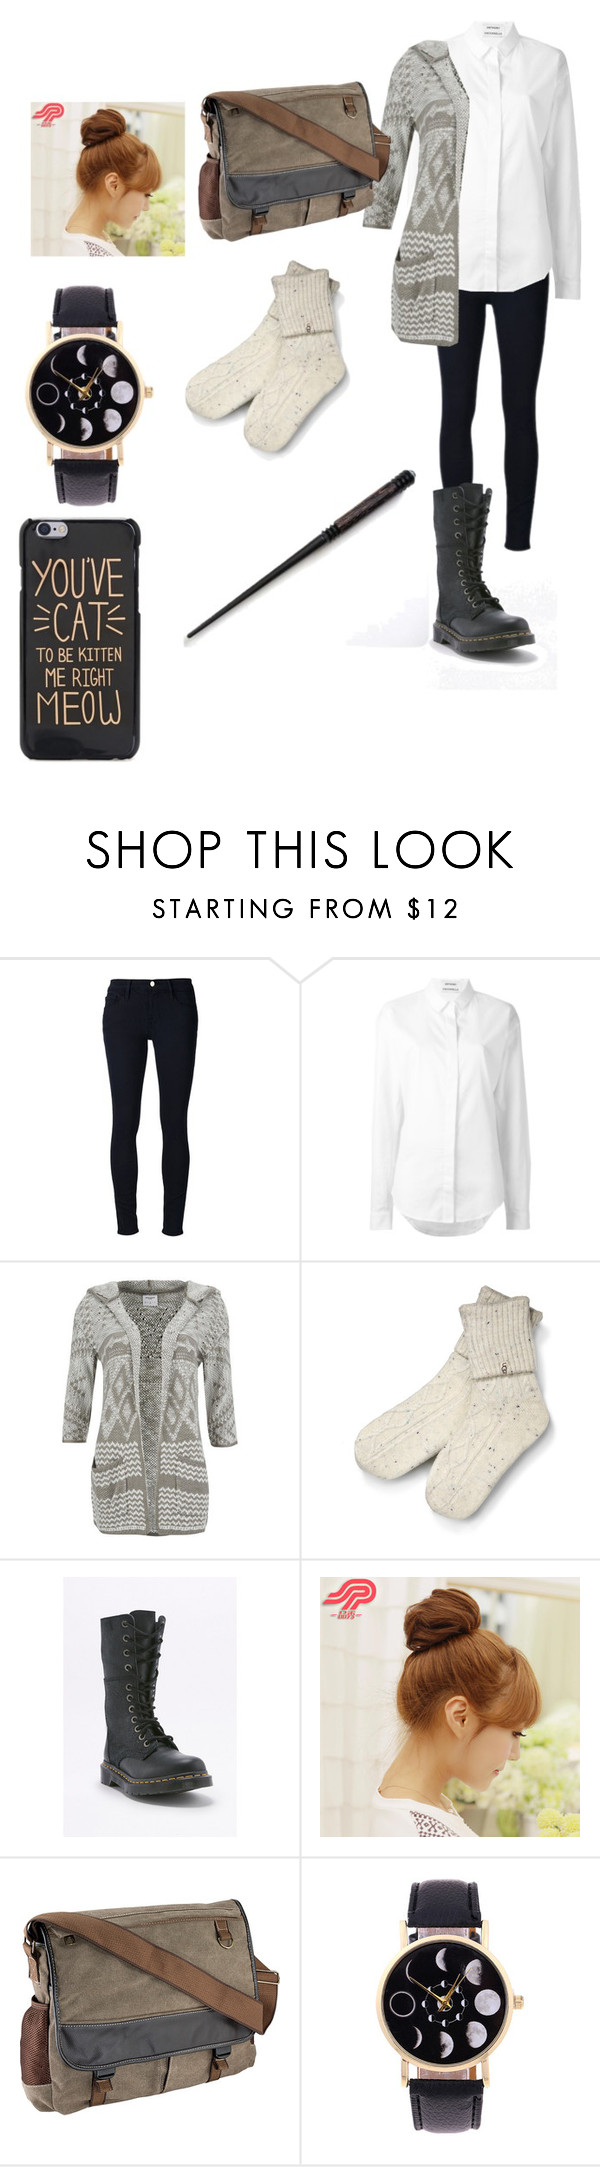 """""""Untitled #627"""" by jettcc on Polyvore featuring Frame Denim, Anthony Vaccarello, Vero Moda, UGG, Dr. Martens and Pin Show"""